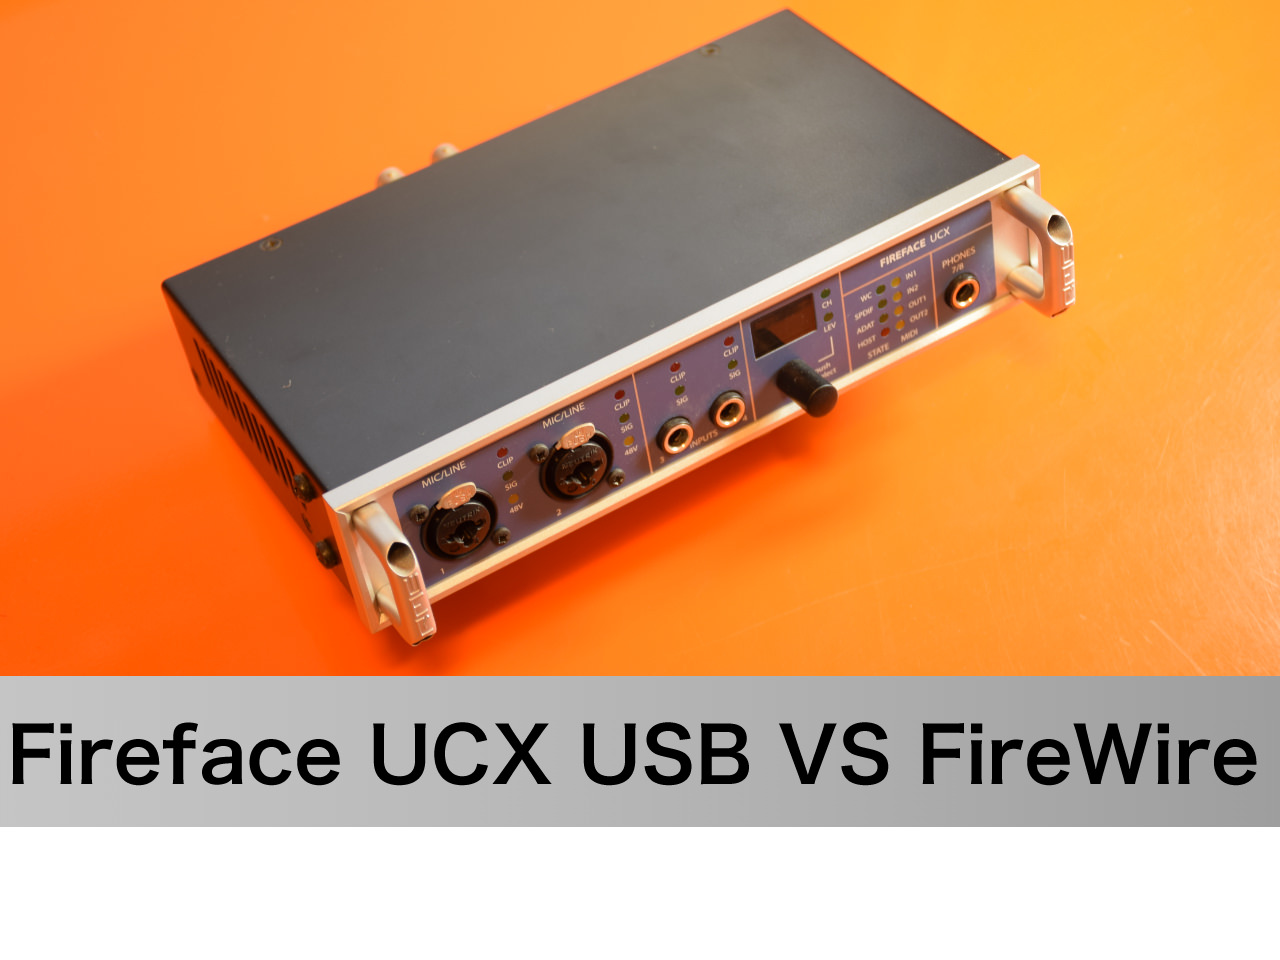 Fireface UCX